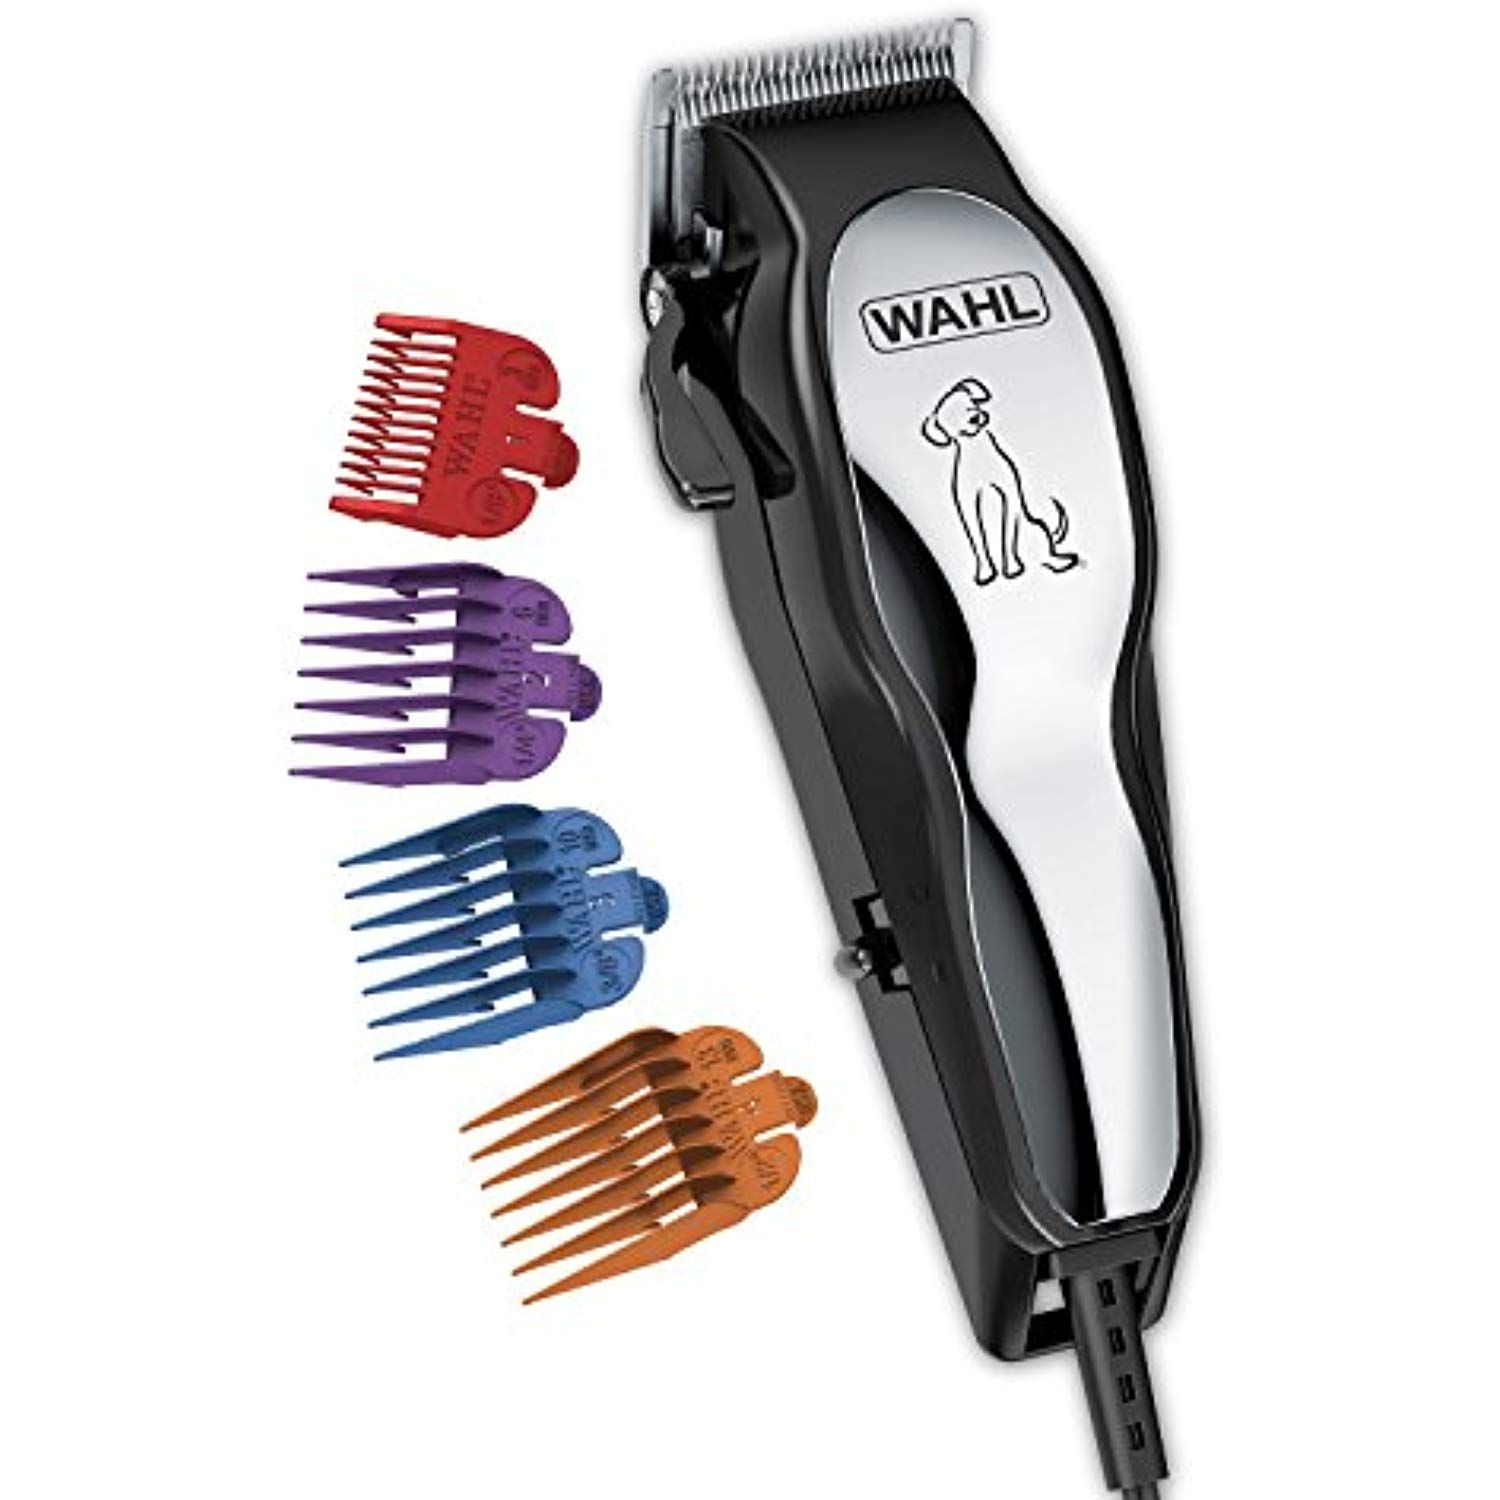 Wahl Clipper Pet Pro Pet Clipper Dog Grooming Kit For Small Large Dogs Thick Coats Heavy Duty Cats Lo Dog Clippers Dog Grooming Clippers Dog Grooming Tools